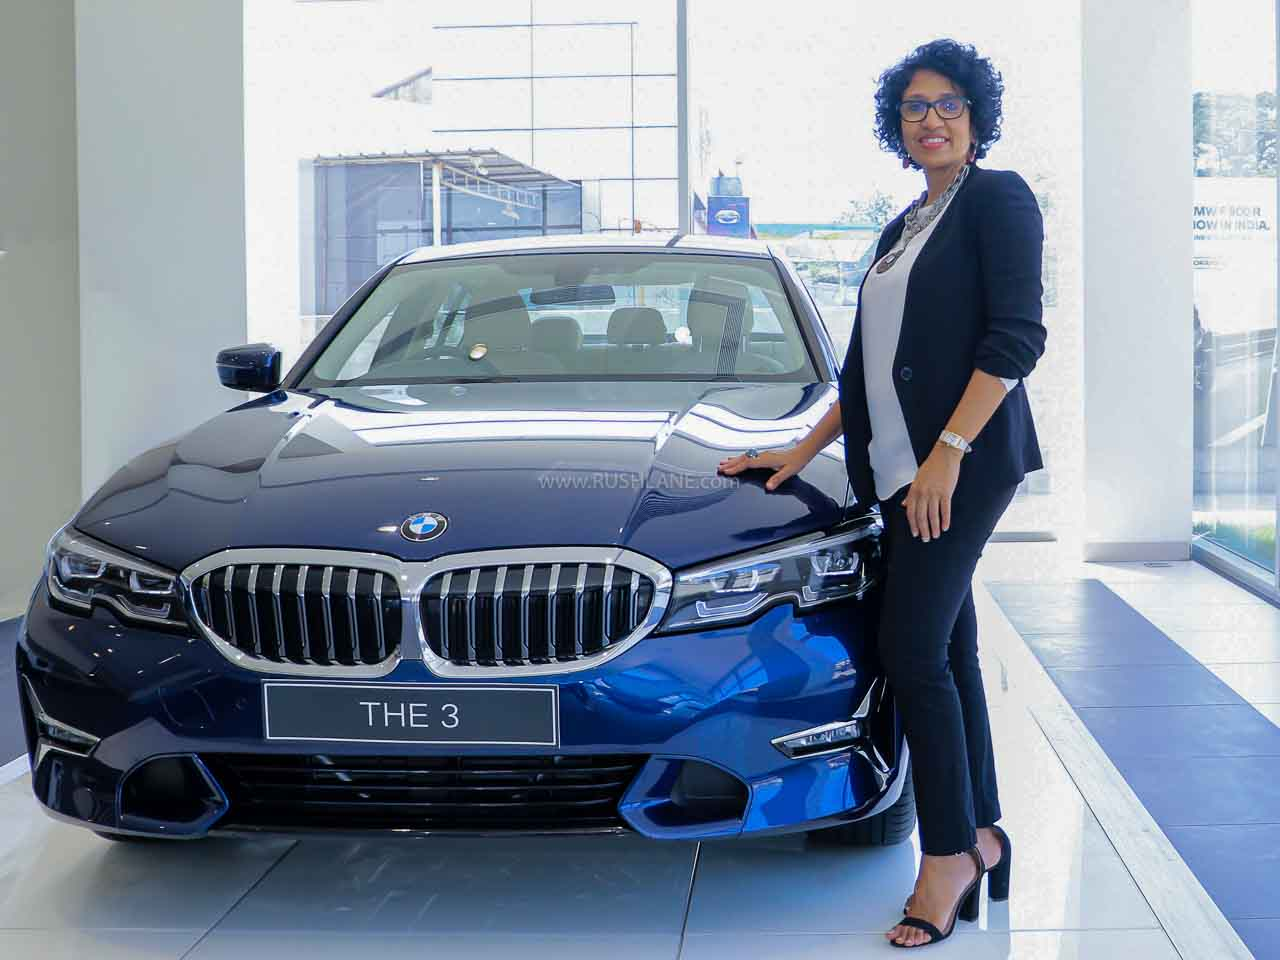 Bmw India Announces Price Increases For All Cars And Suvs India News Republic